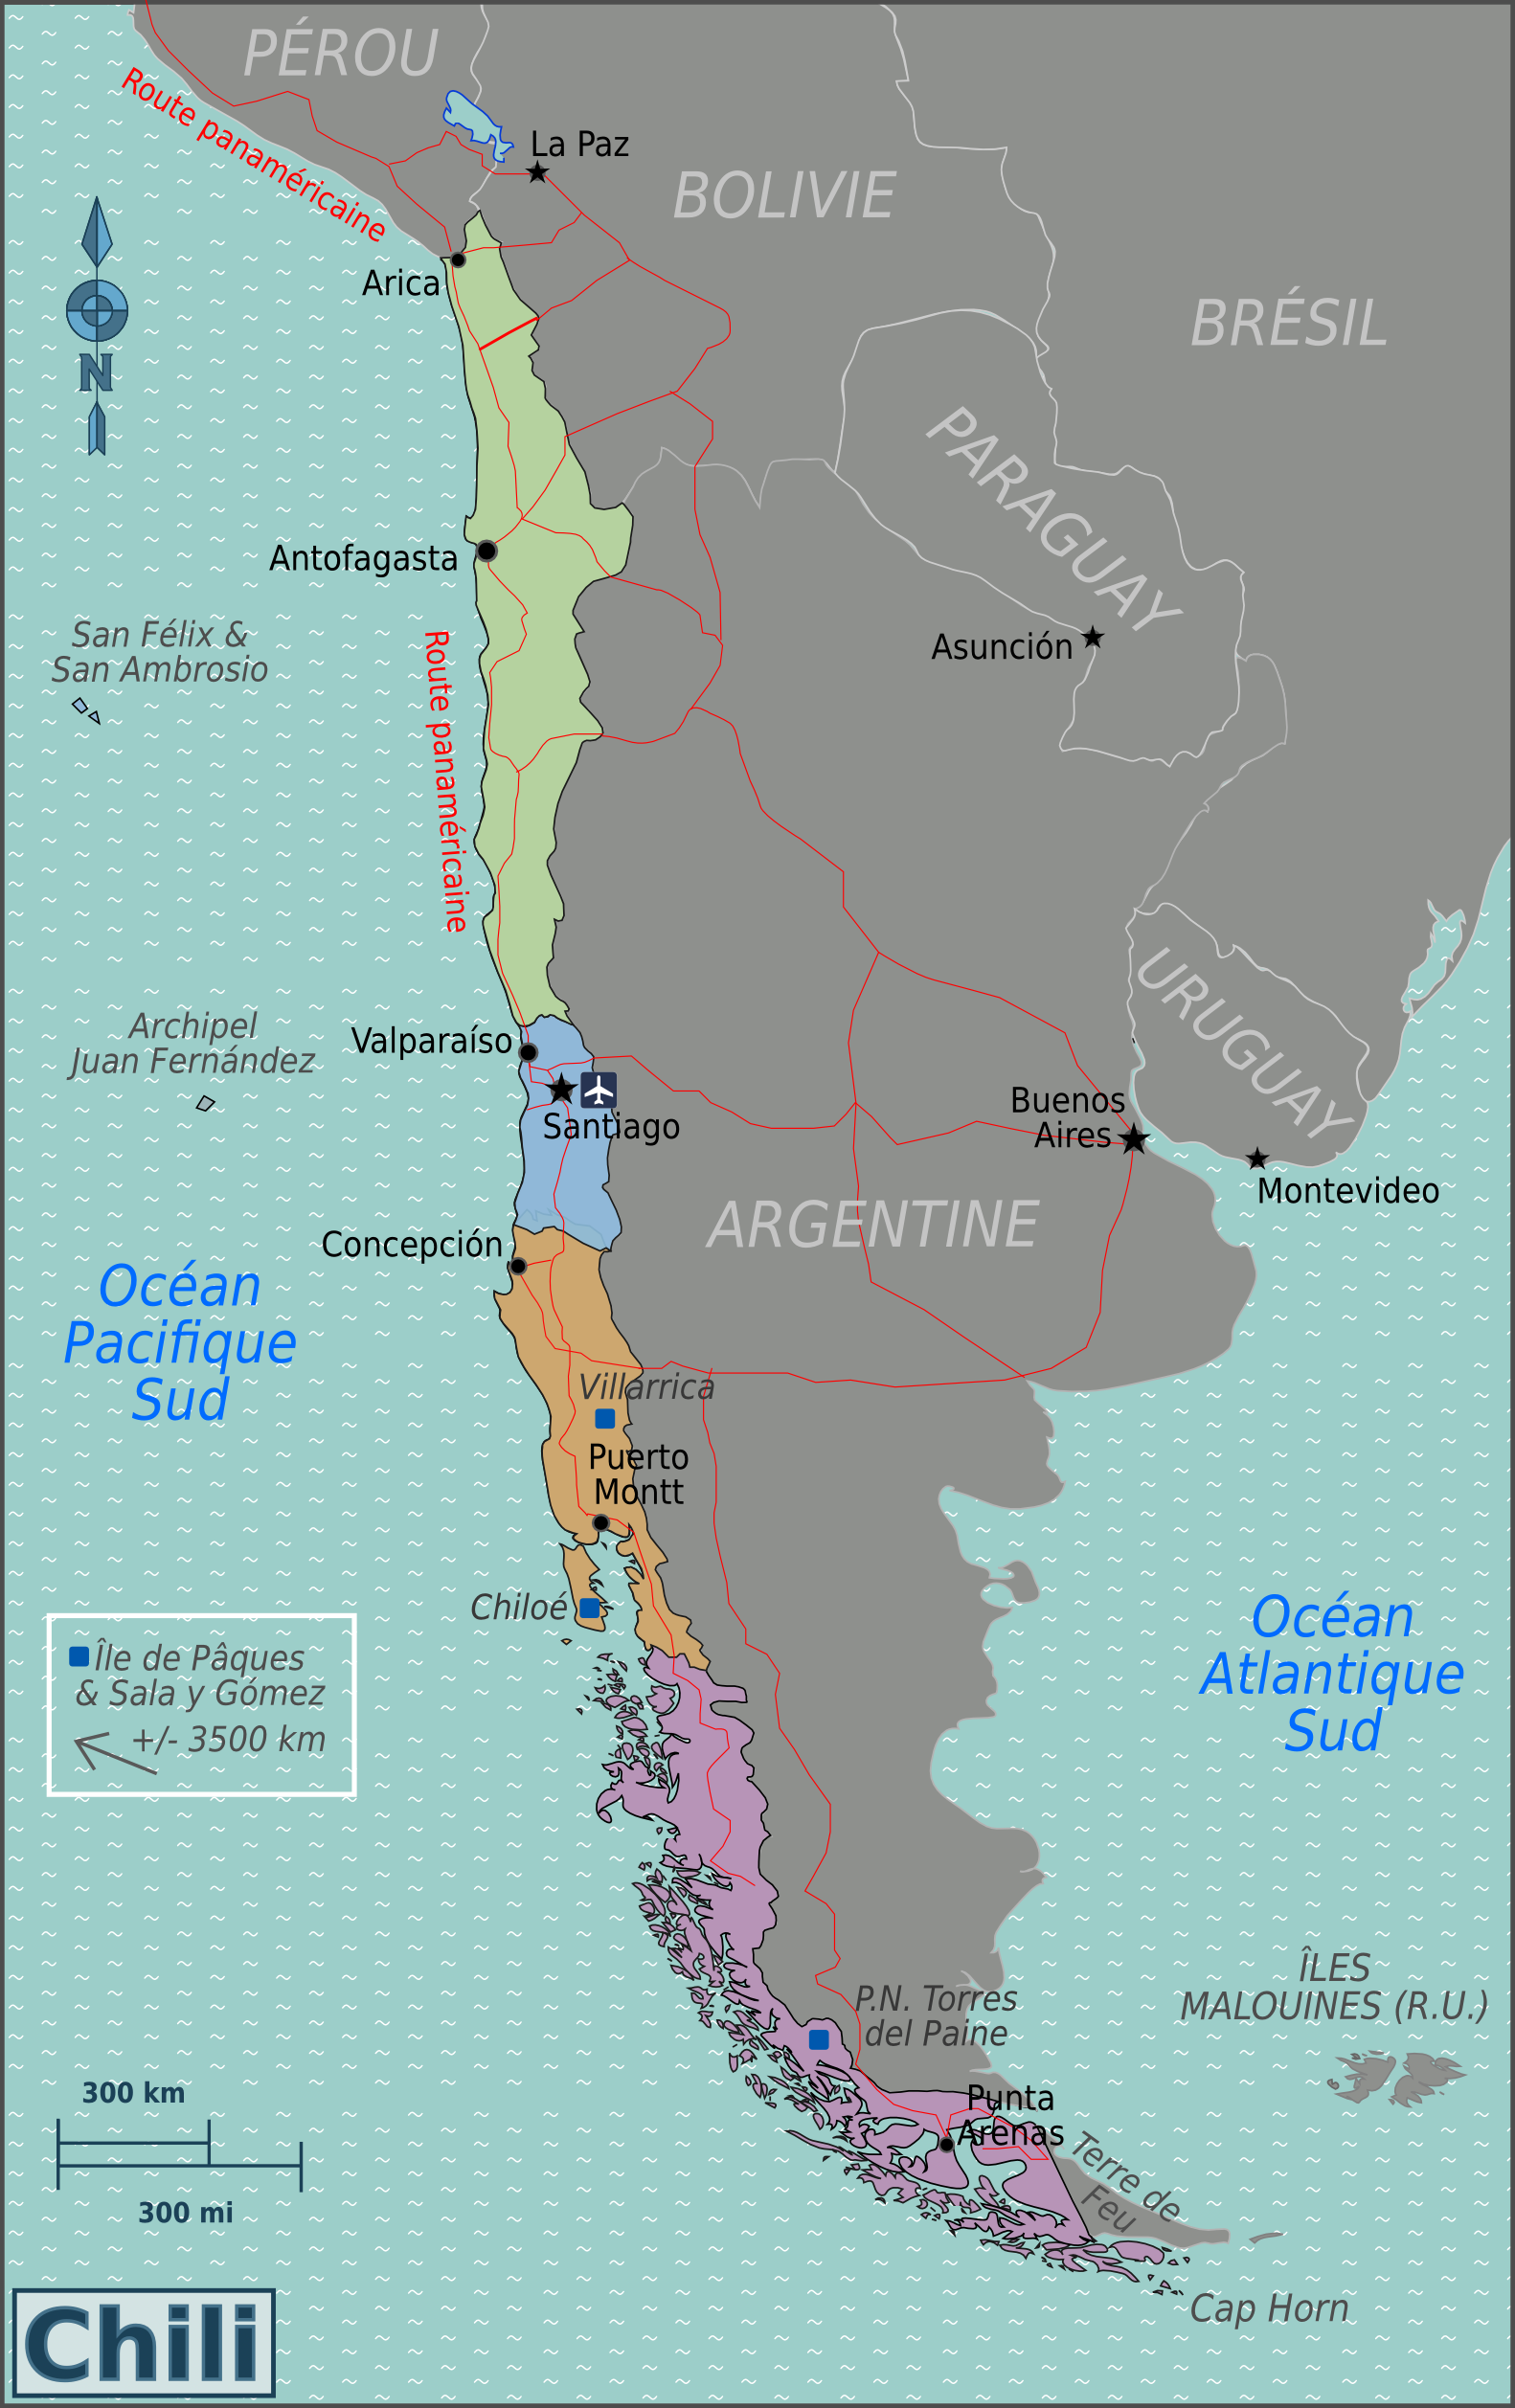 FileChile Regions Map Frpng Wikimedia Commons - Chile regions map